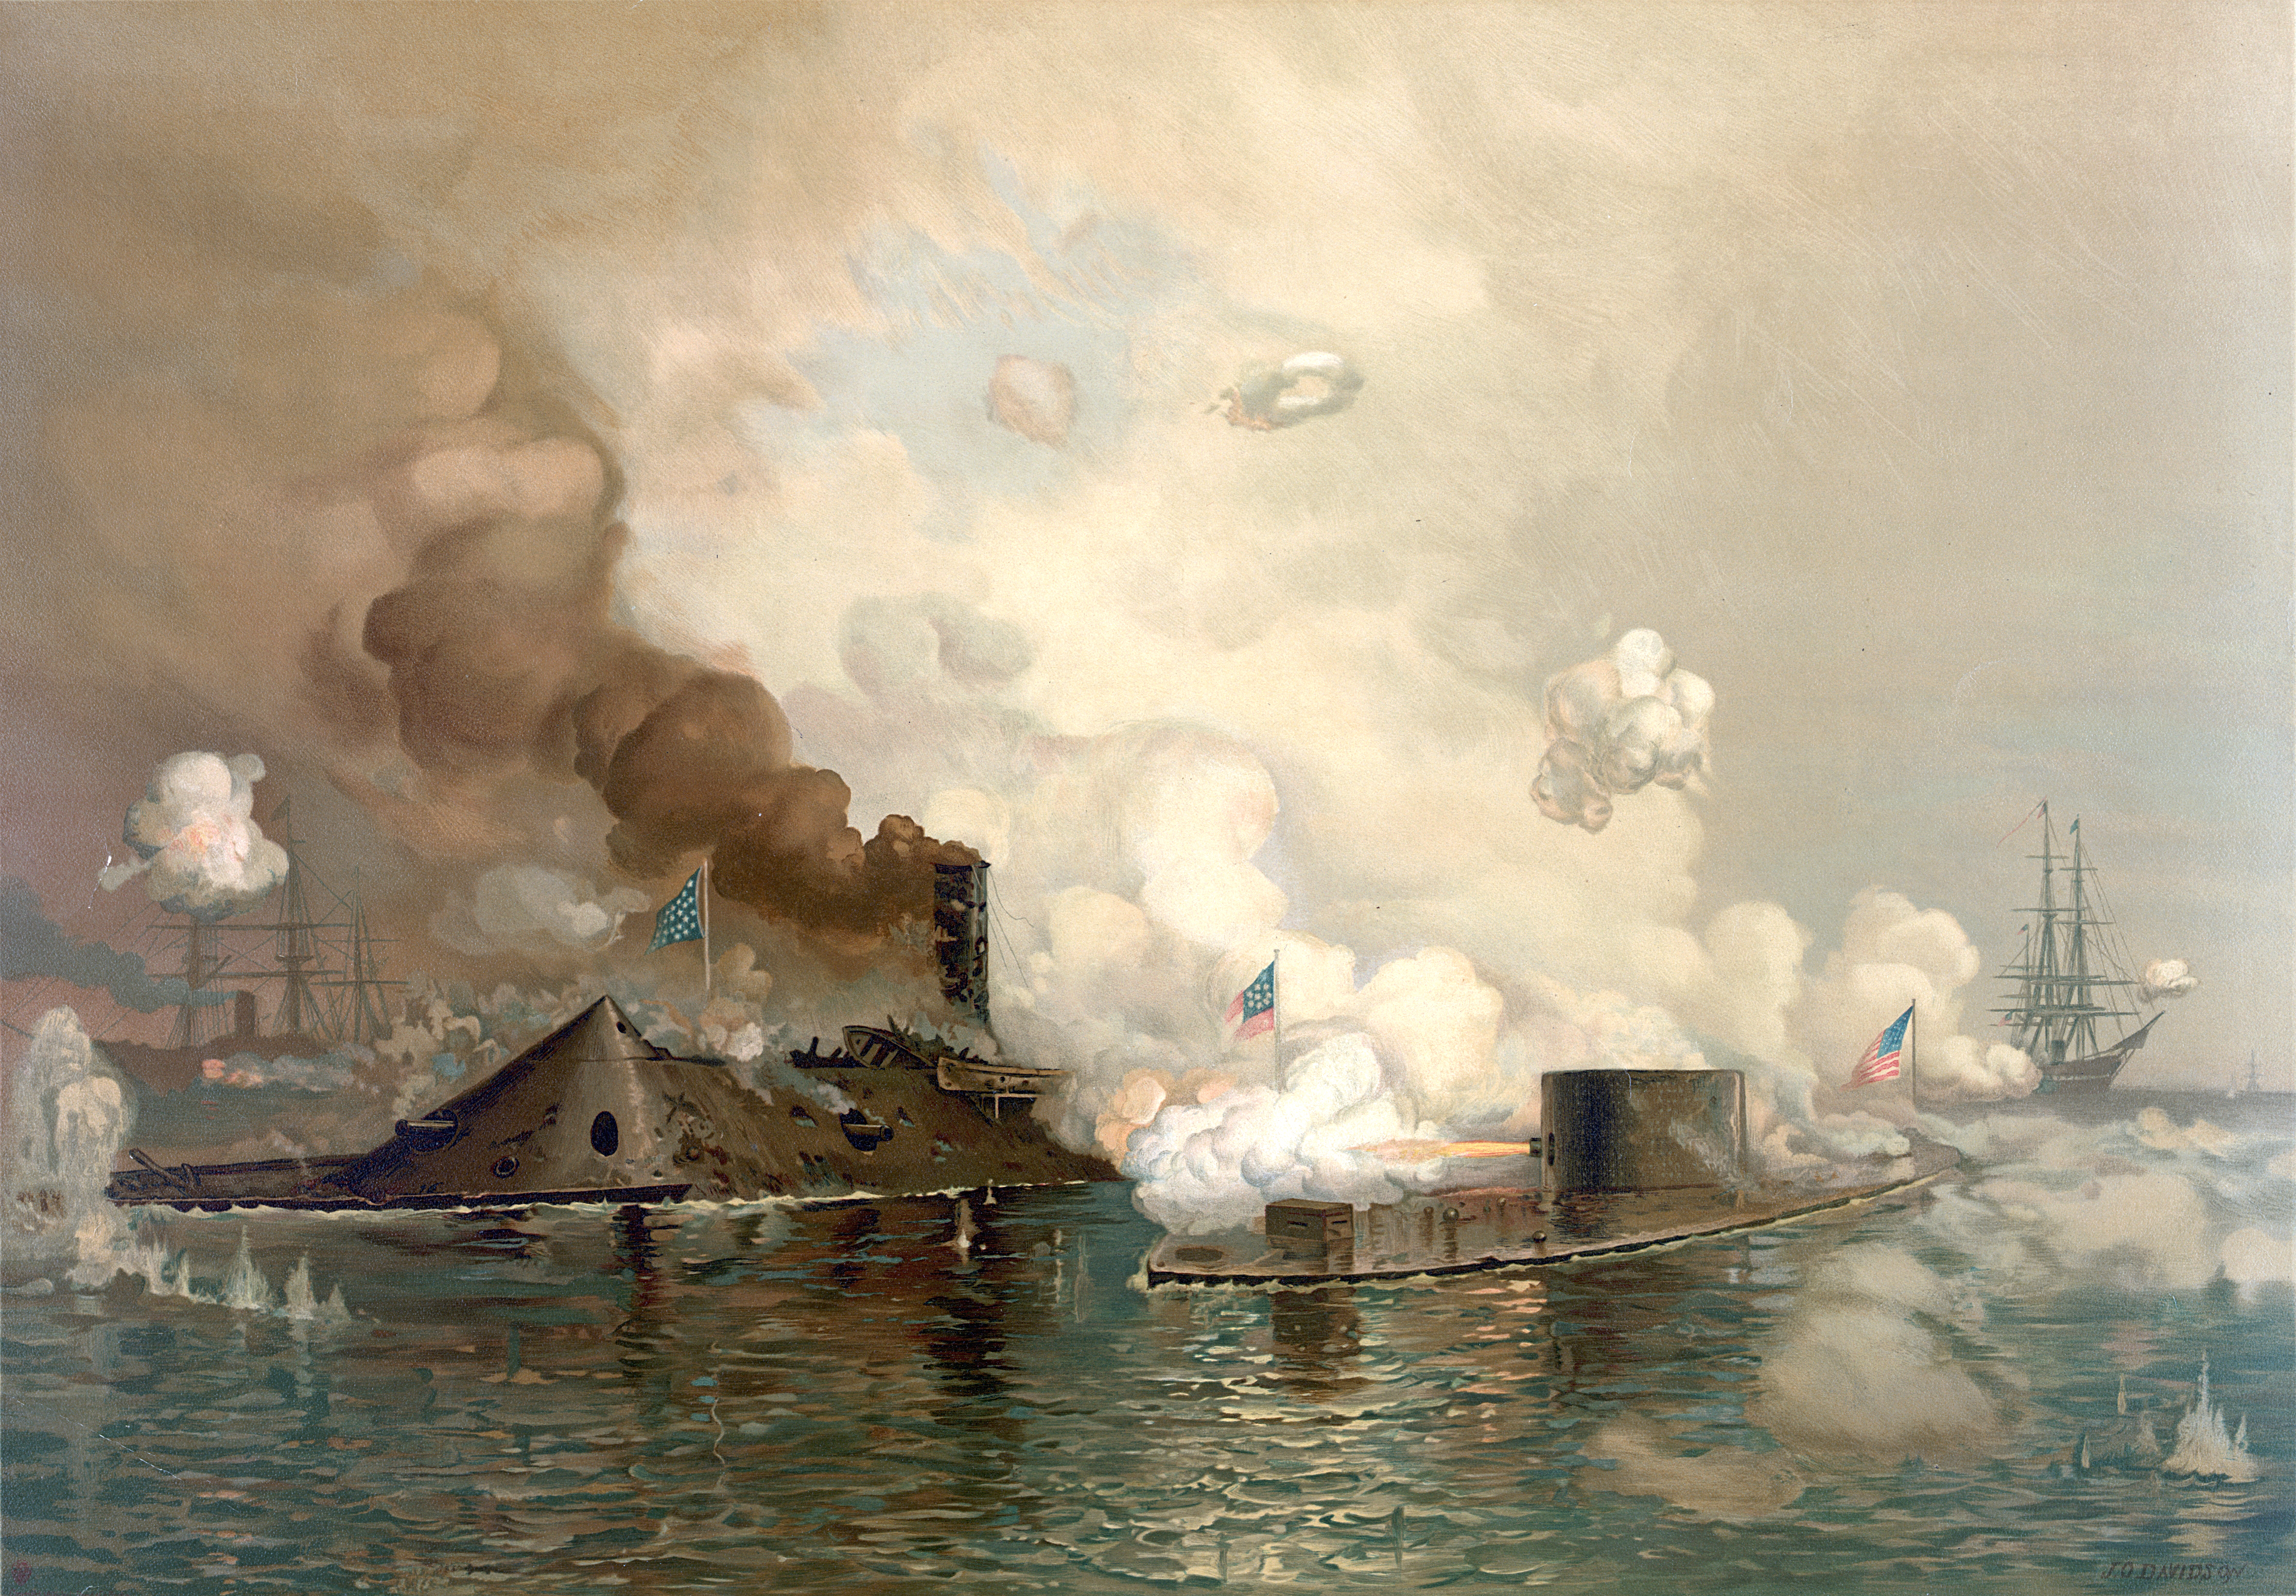 the battle between the uss monitor and the css merrimack The battle of hampton roads was fought on march 9, 1862 between the first two ironclad ships, the monitor and the merrimack this battle was.